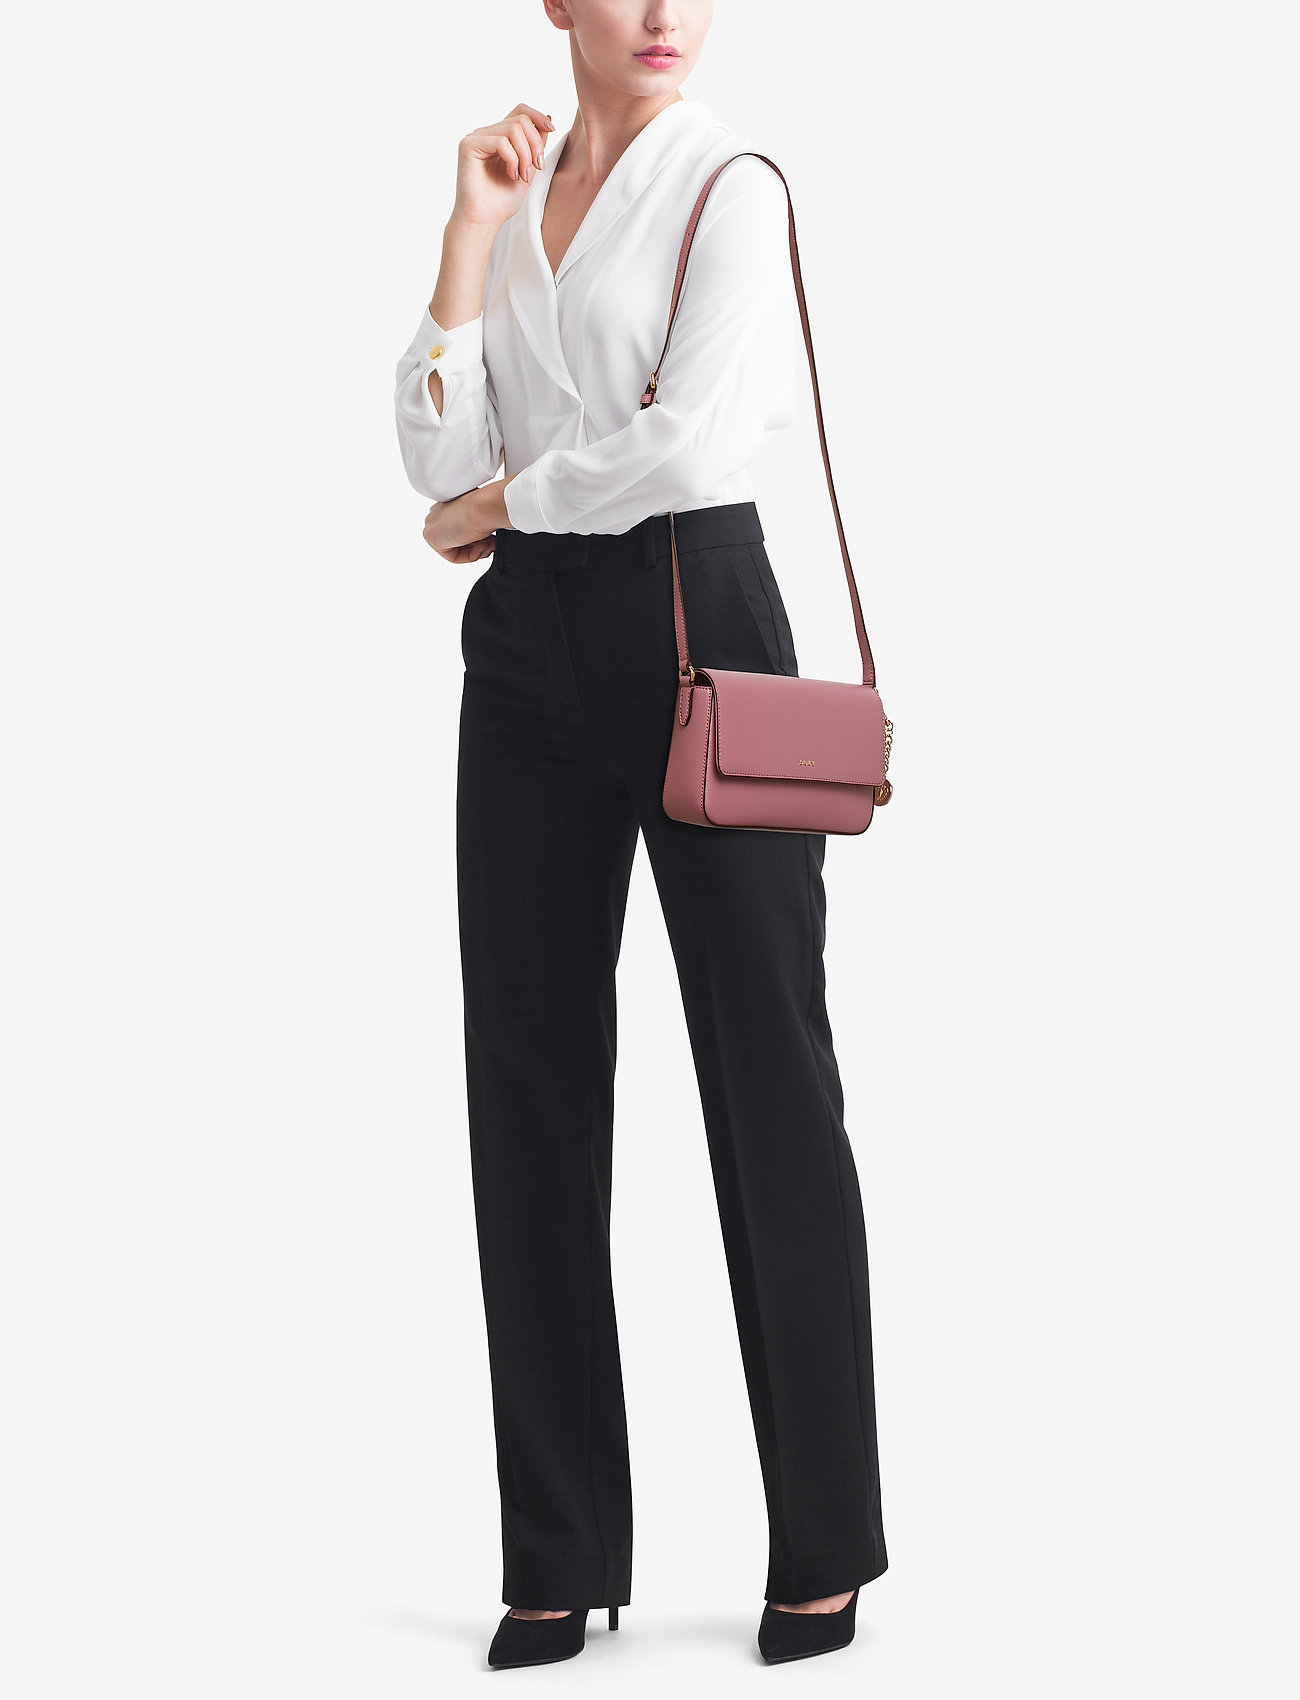 DKNY Bags BRYANT-MD FLAP XBODY